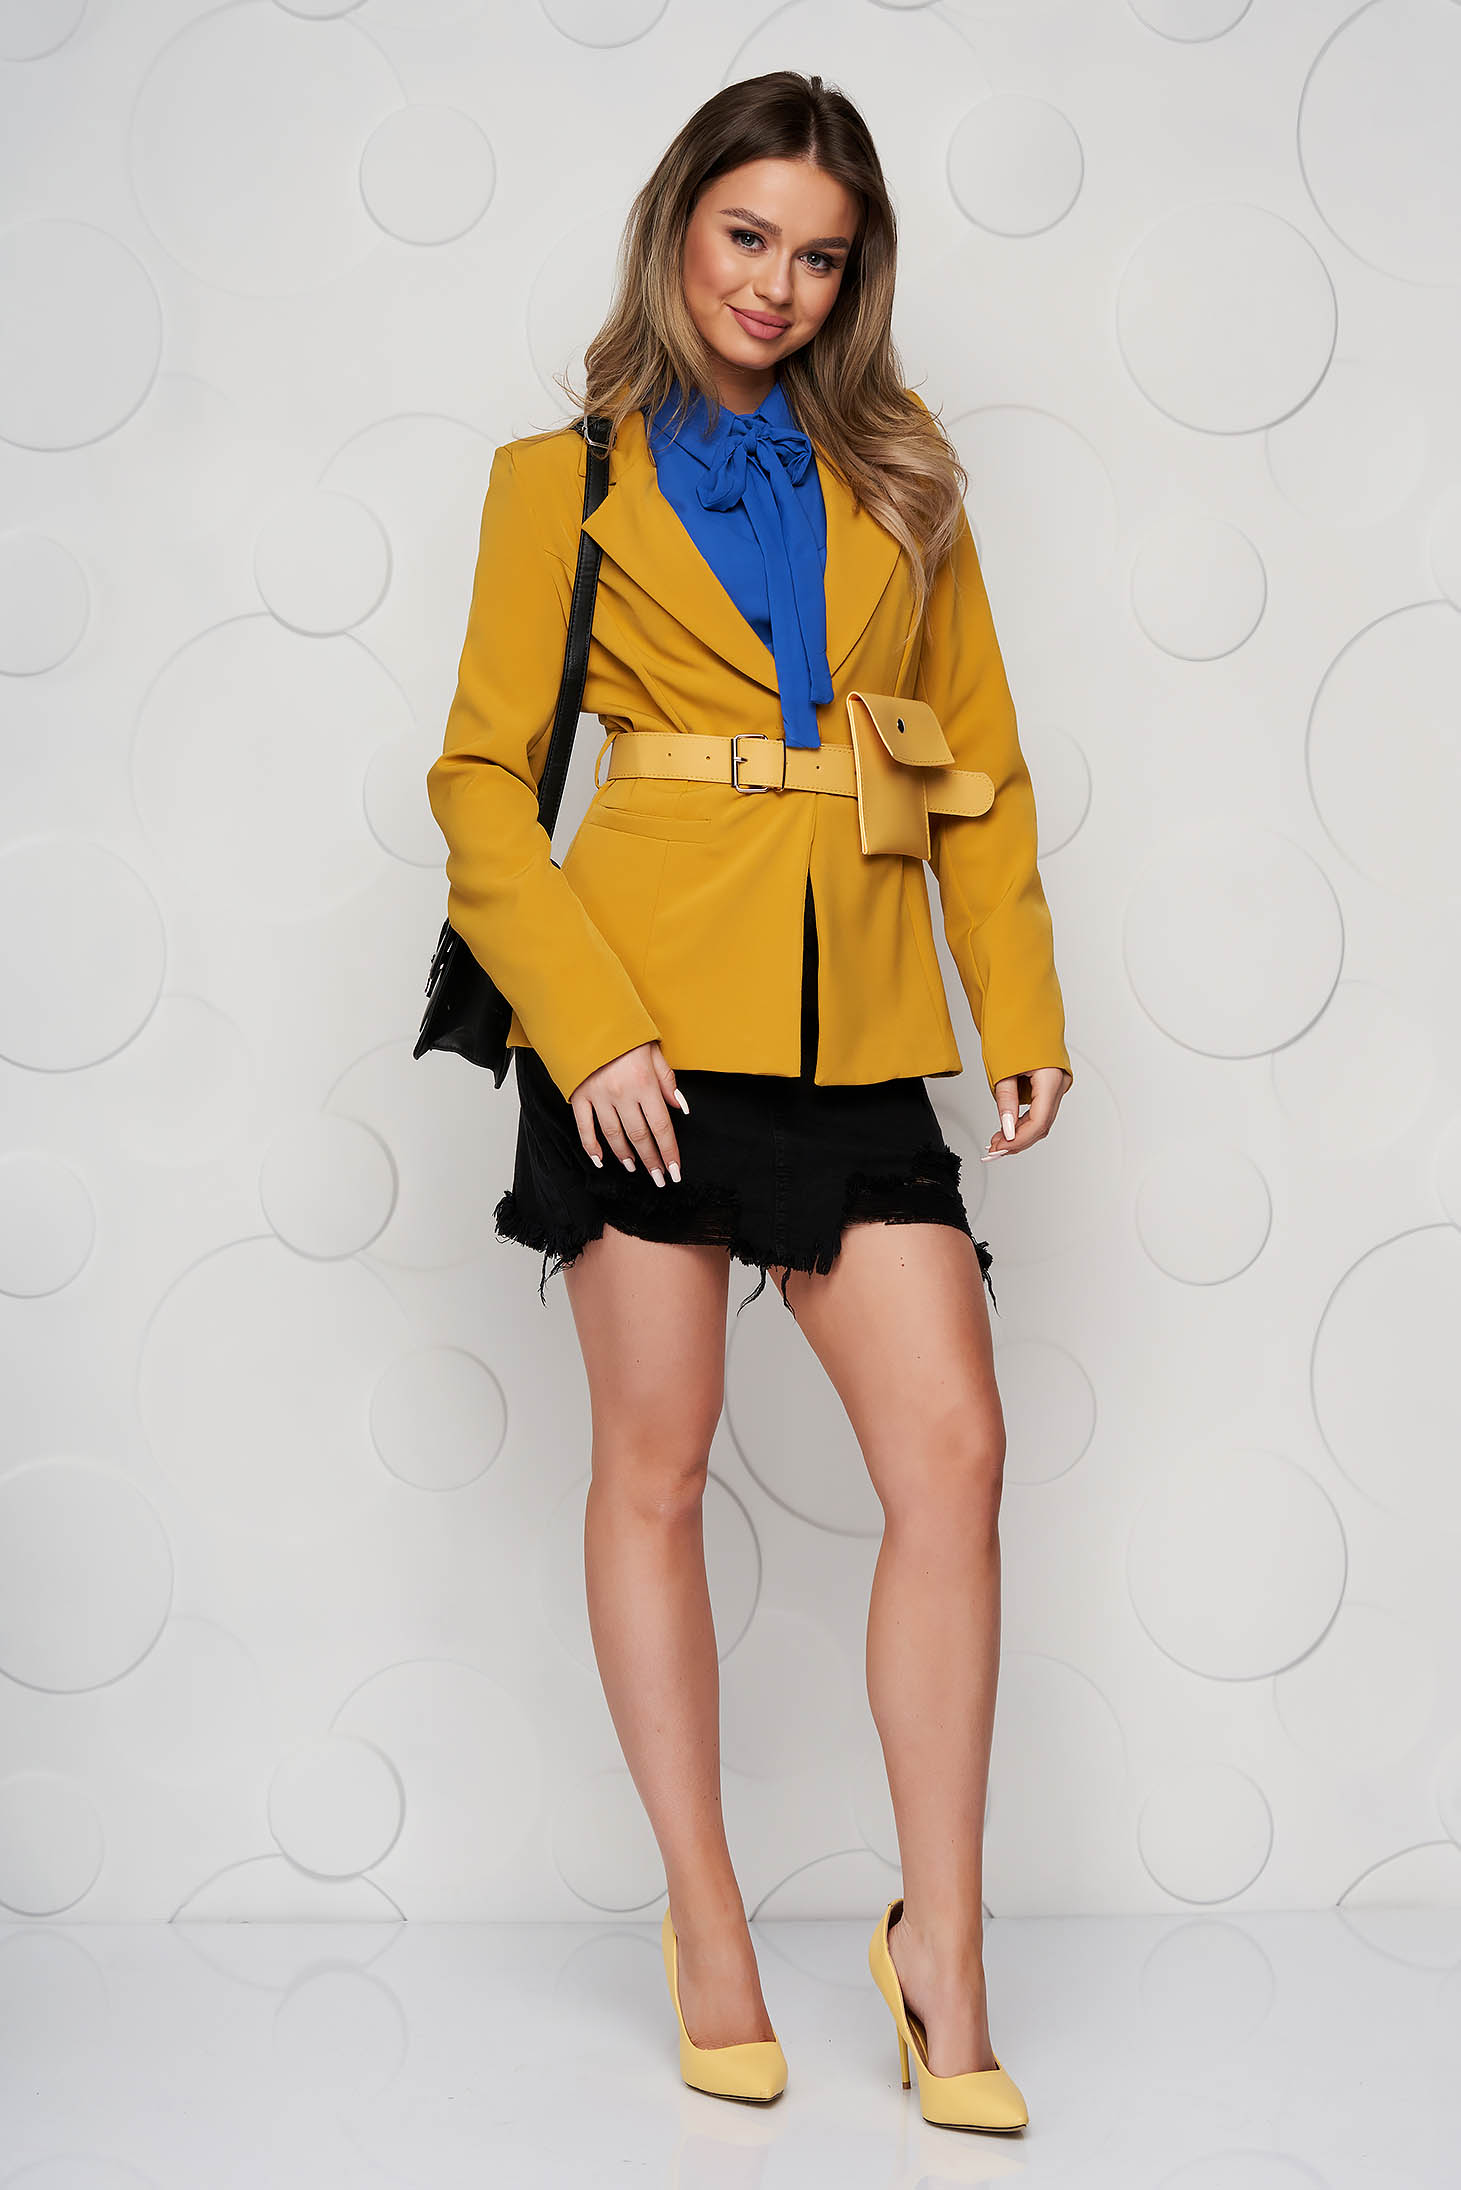 Mustard jacket tented accessorized with belt purse